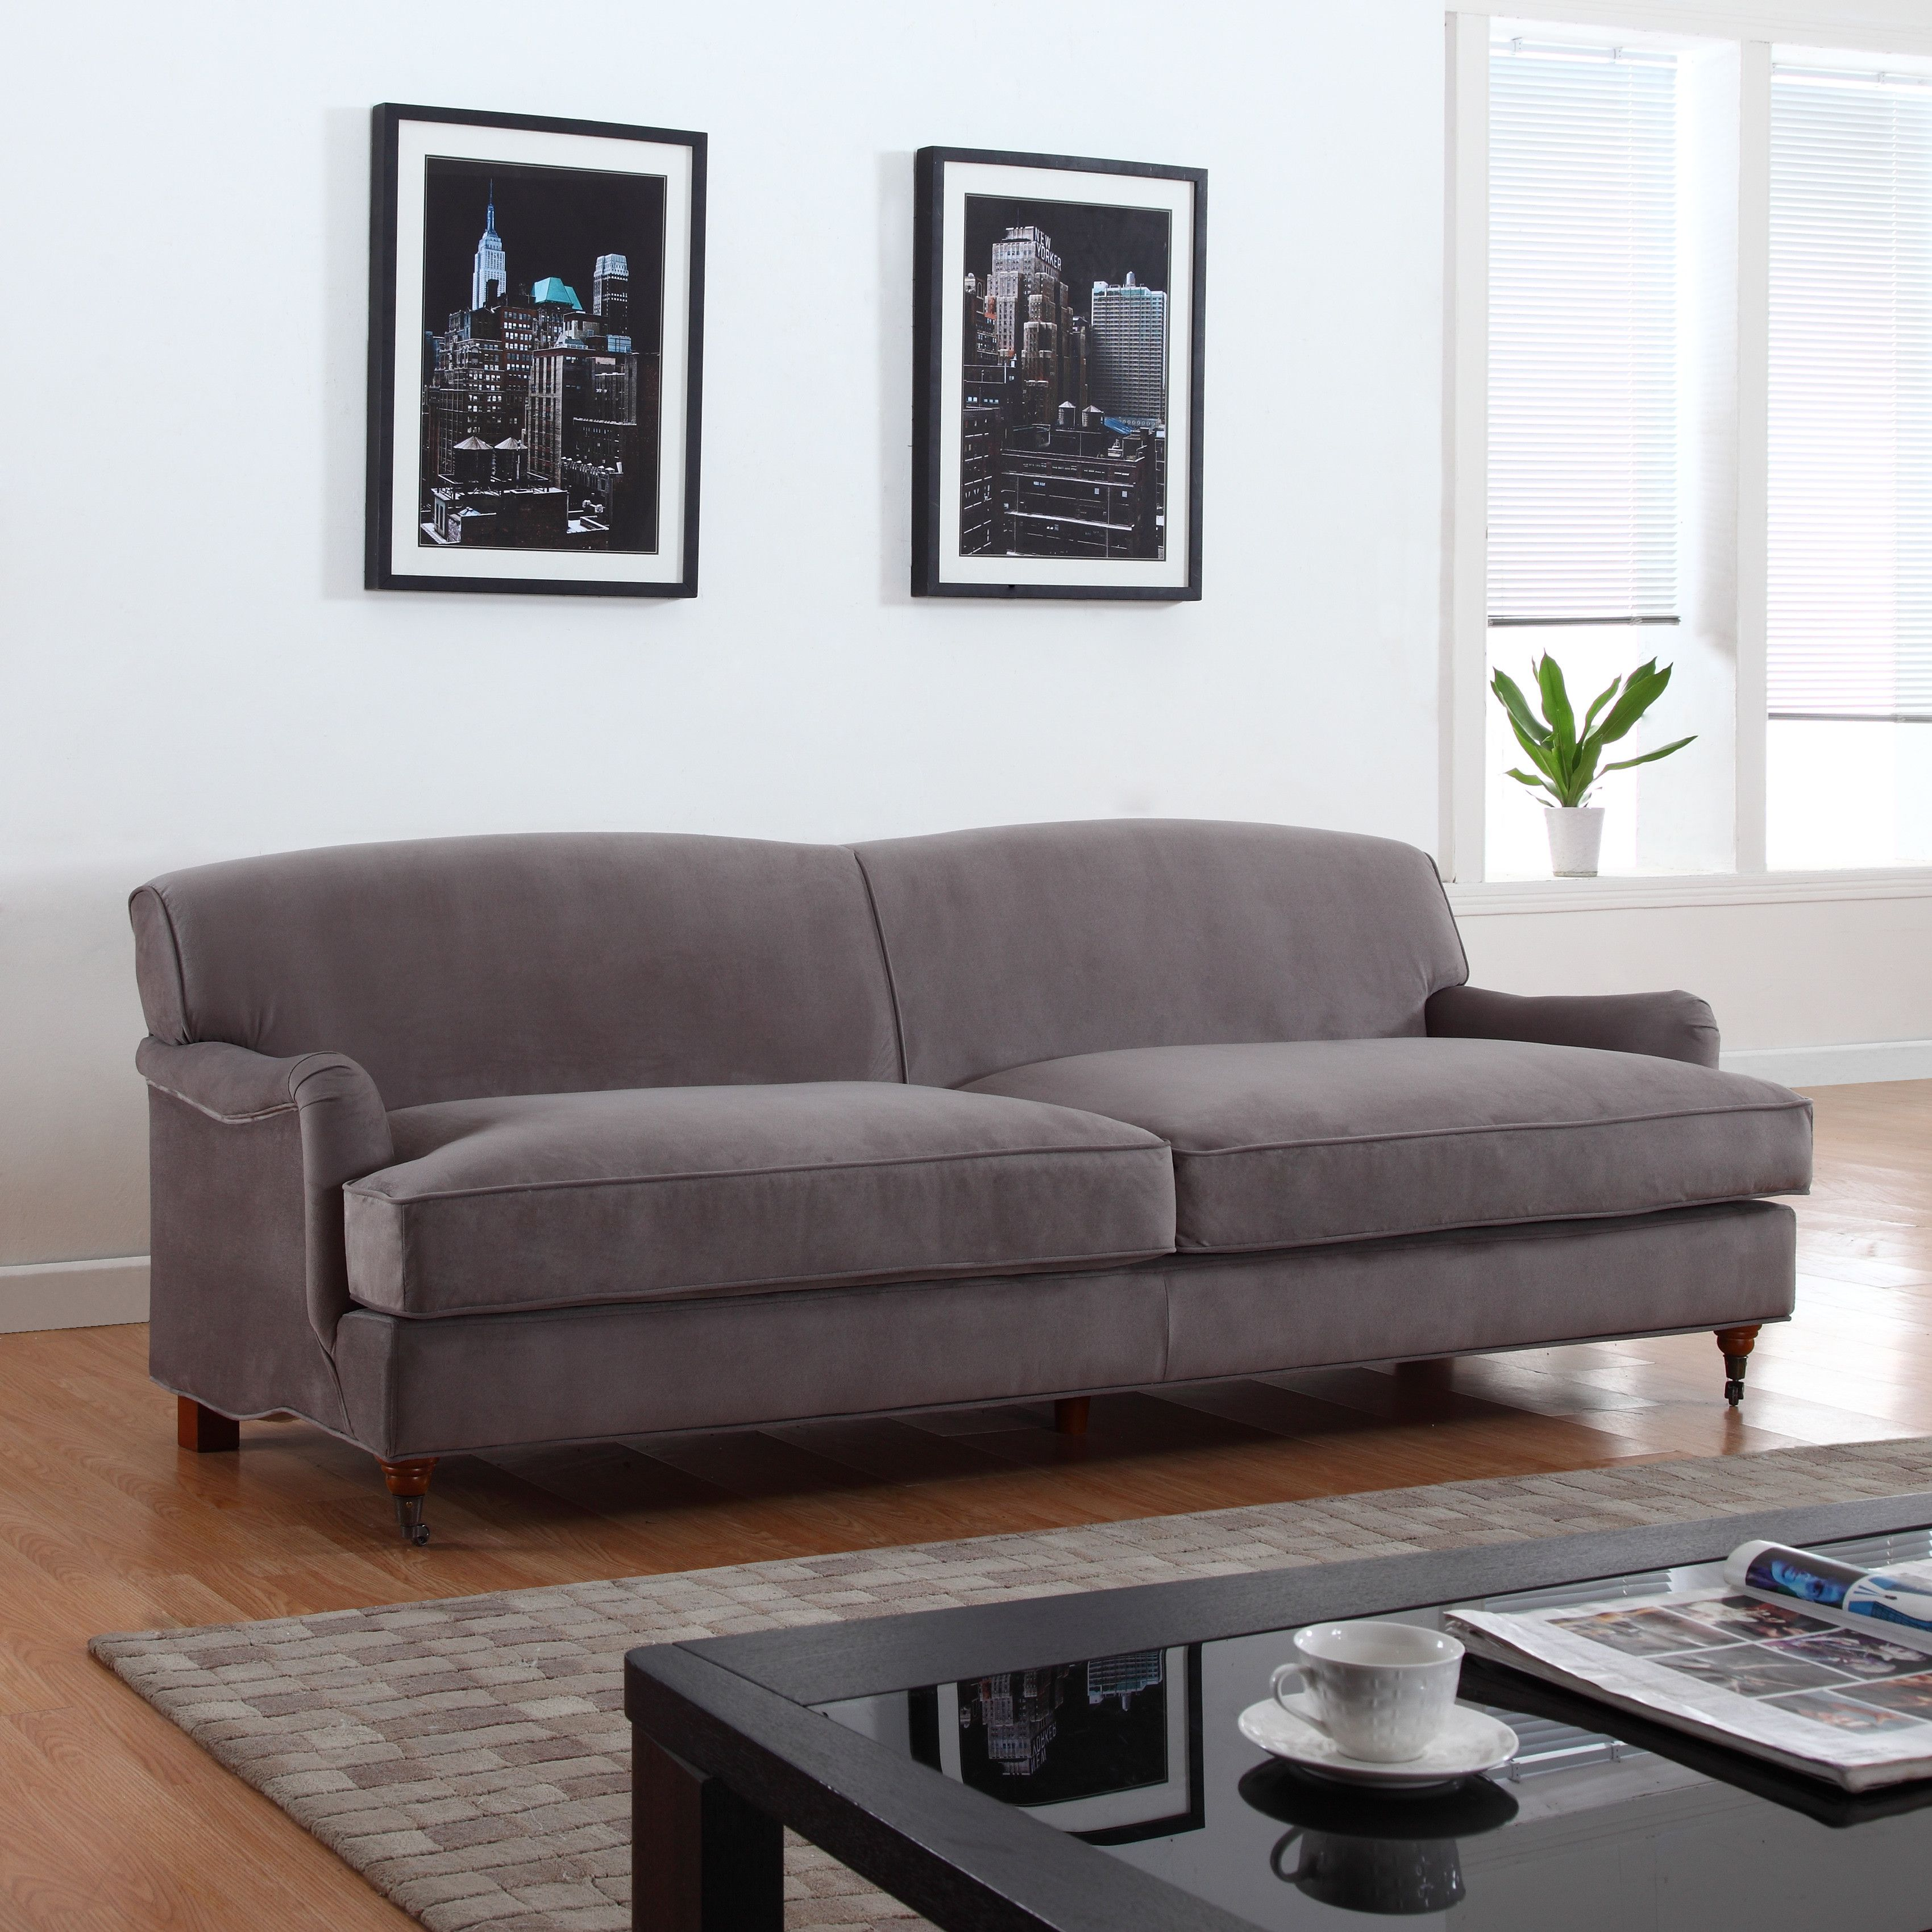 Genial Shop Wayfair For Sofas To Match Every Style And Budget. Enjoy Free Shipping  On Most